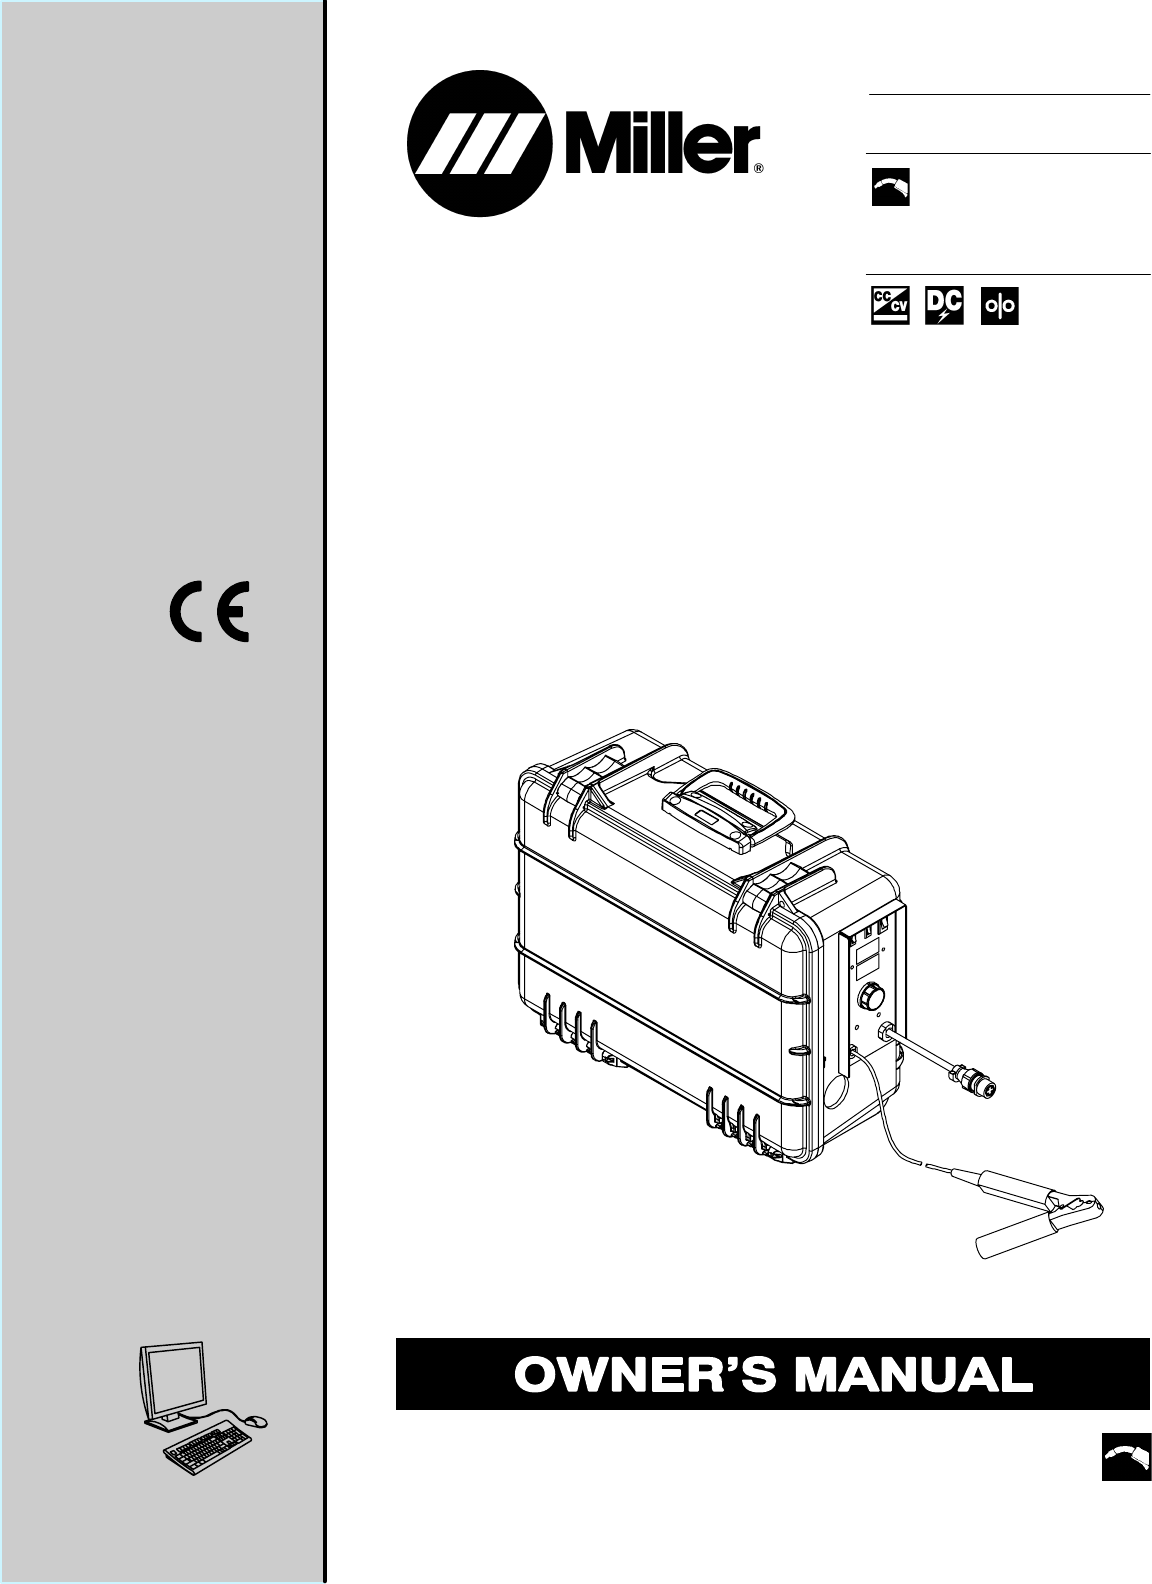 d64448b0 2daf 431d 8f72 687d72ae659e bg1 miller electric welder 12vs user guide manualsonline com Basic Electrical Wiring Diagrams at nearapp.co